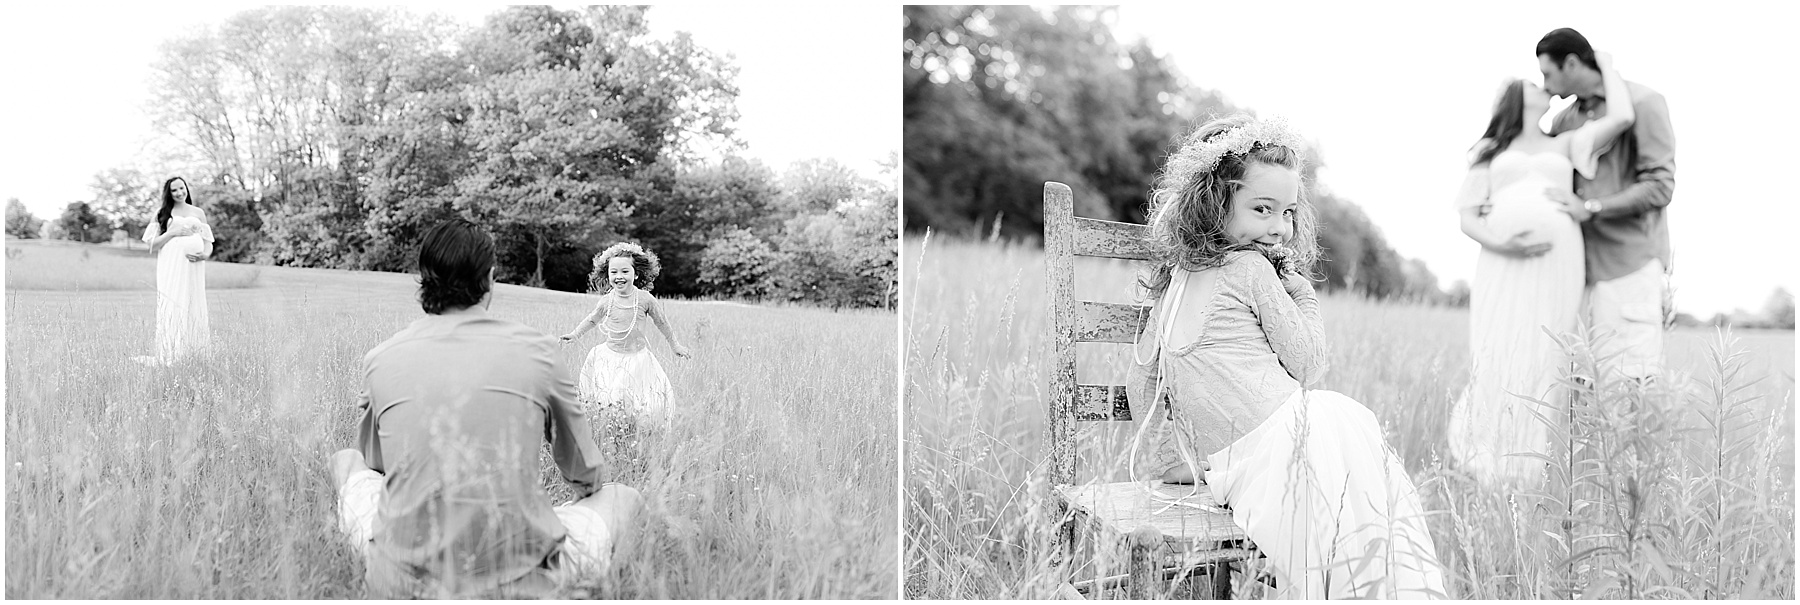 Father playing with his daughter in the field, with expecting wife smiling in the distance, Indianapolis Maternity Photography